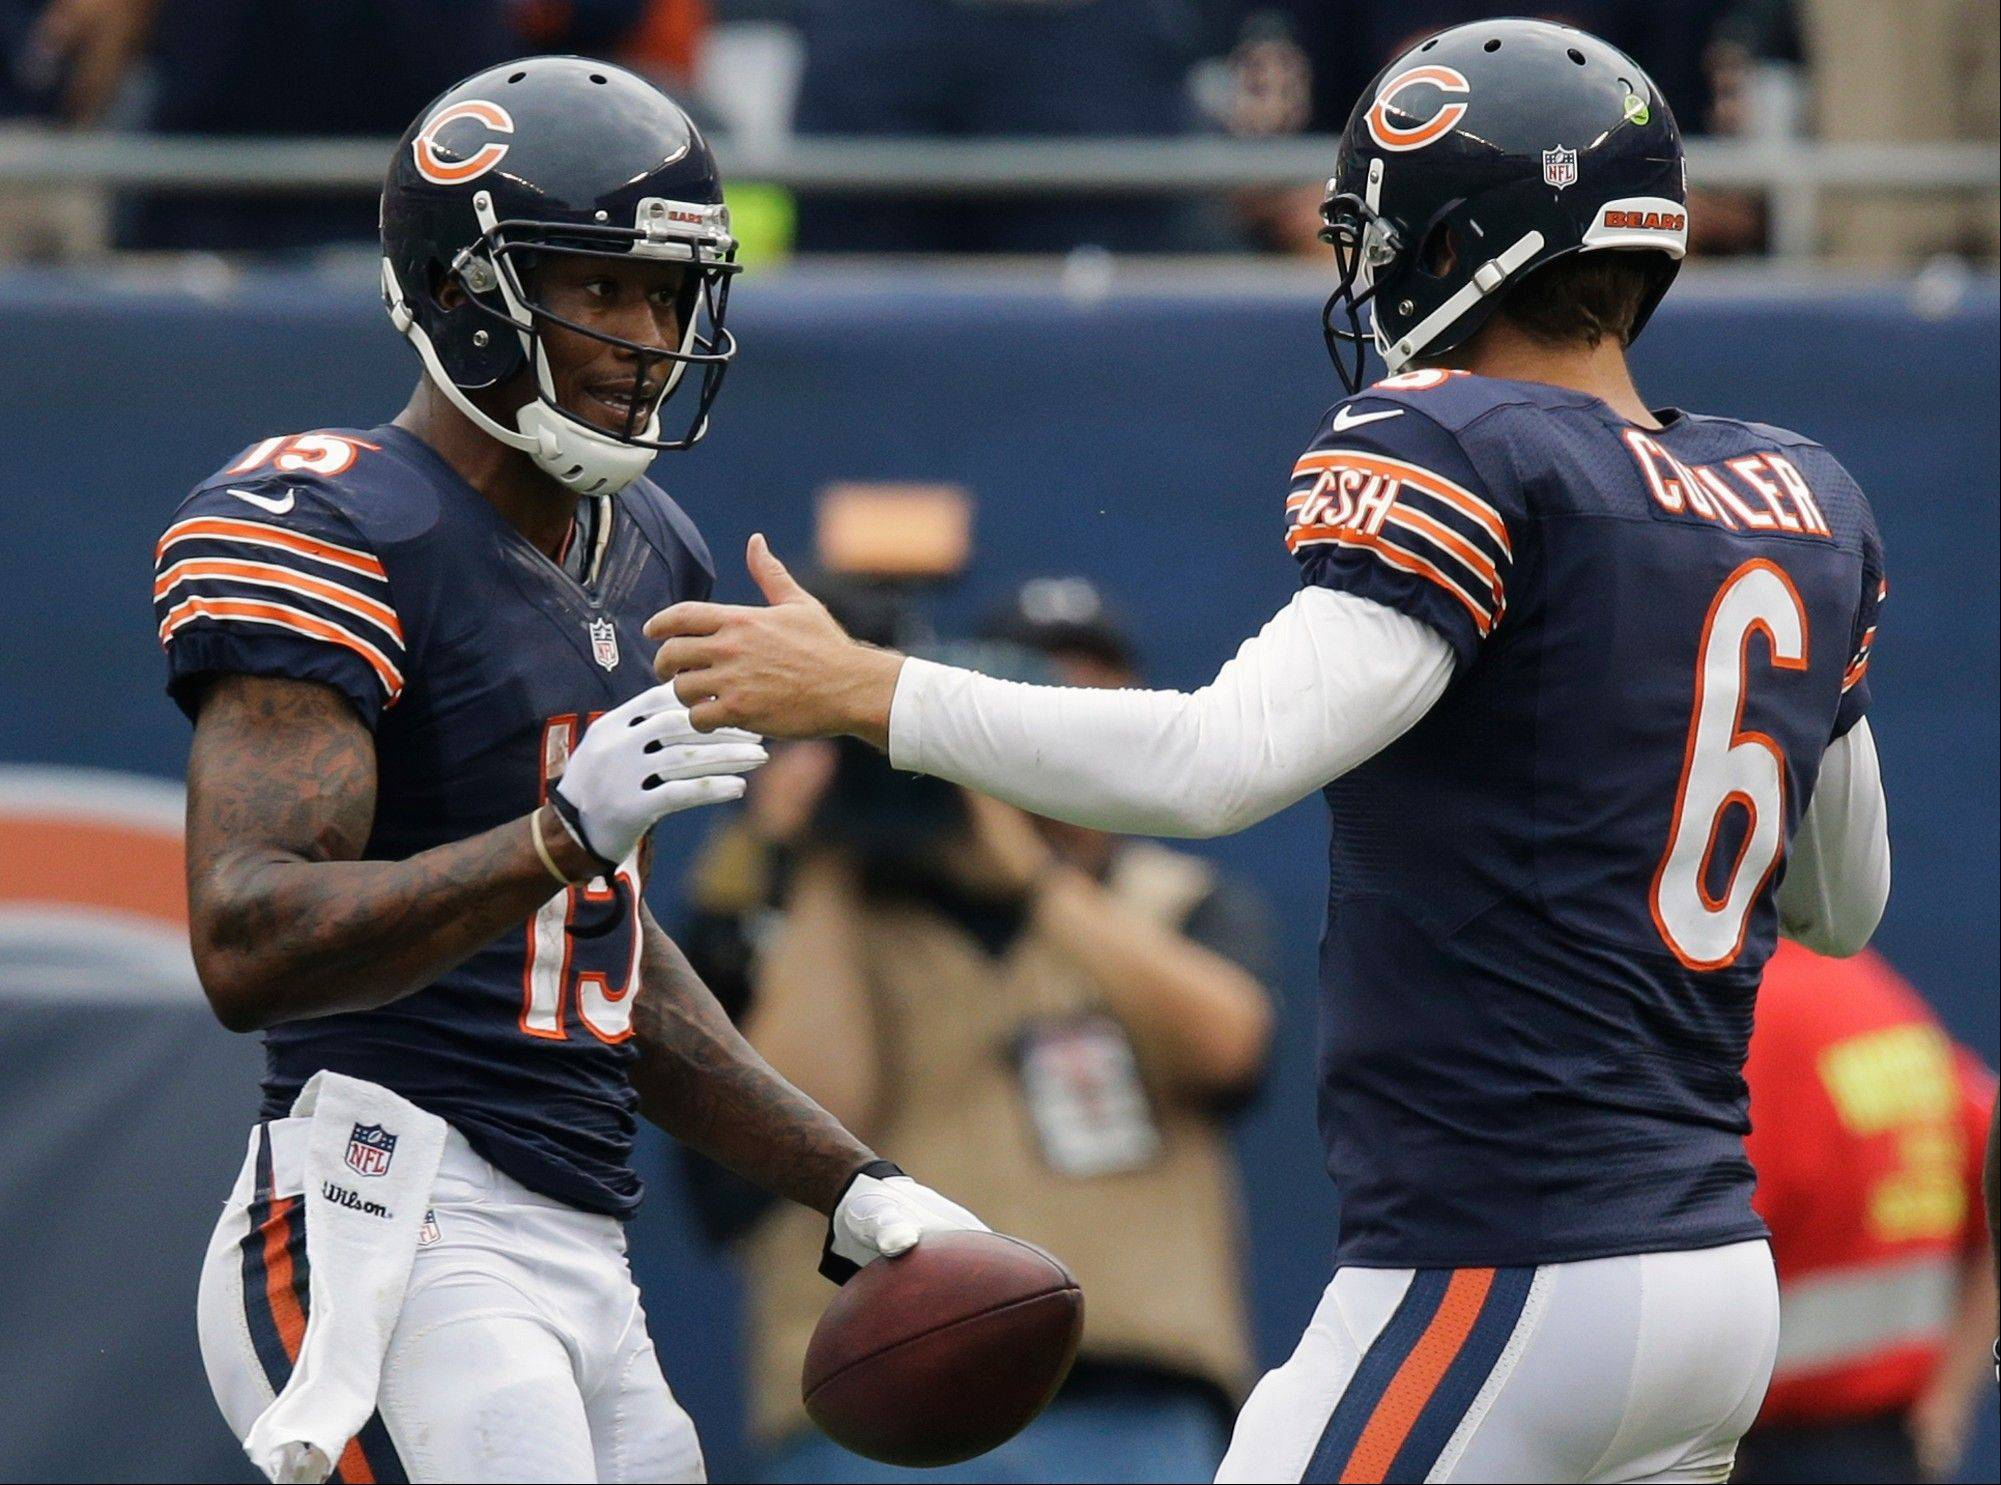 Trestman not surprised by Cutler's leadership